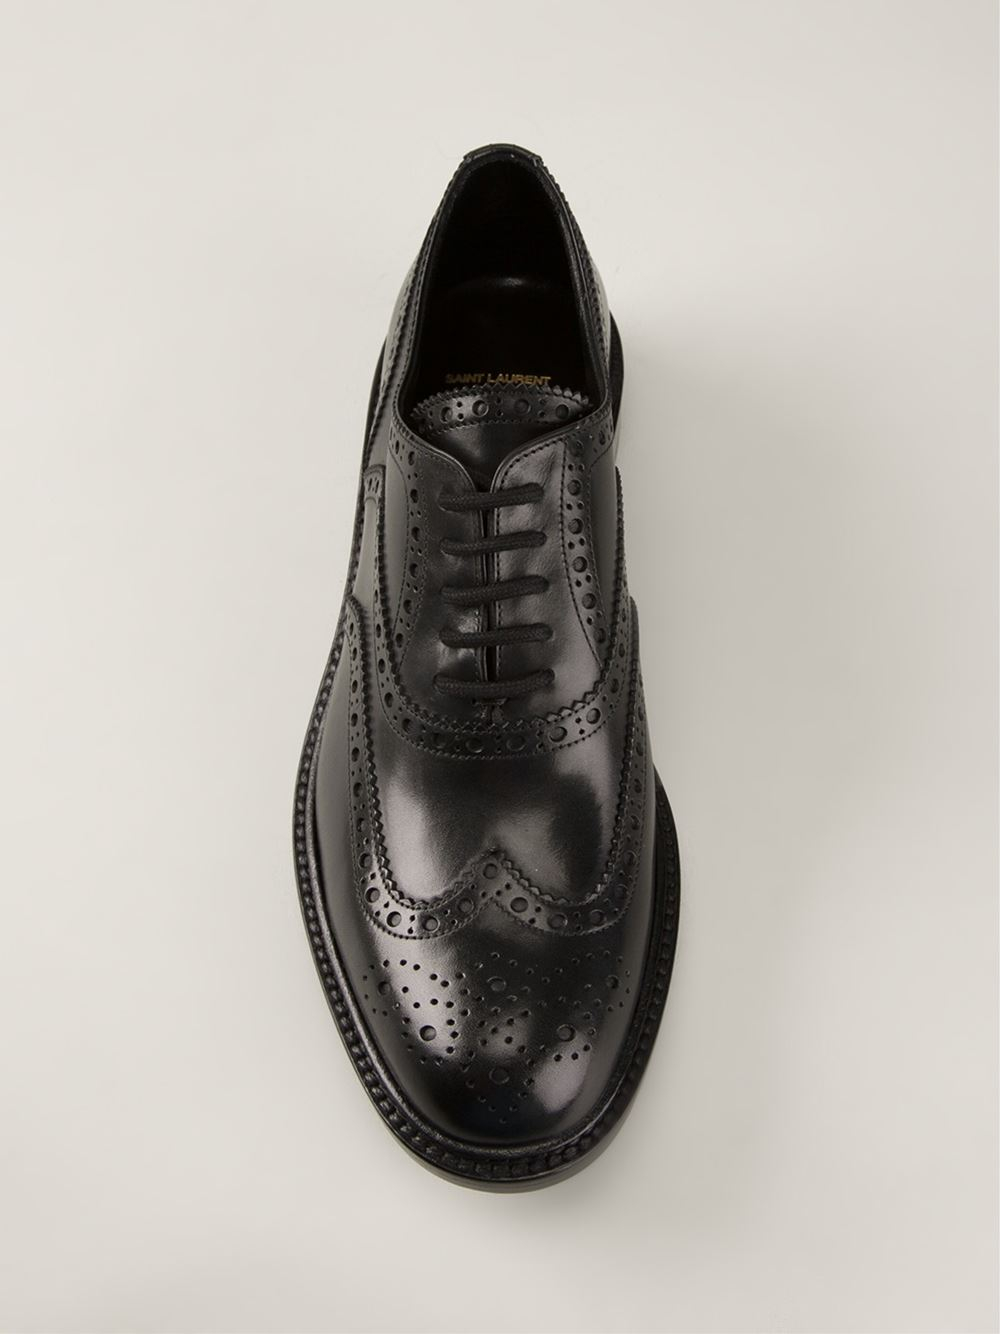 free shipping newest low price fee shipping for sale Saint Laurent Black Army Derbys free shipping find great 3GEFaQF